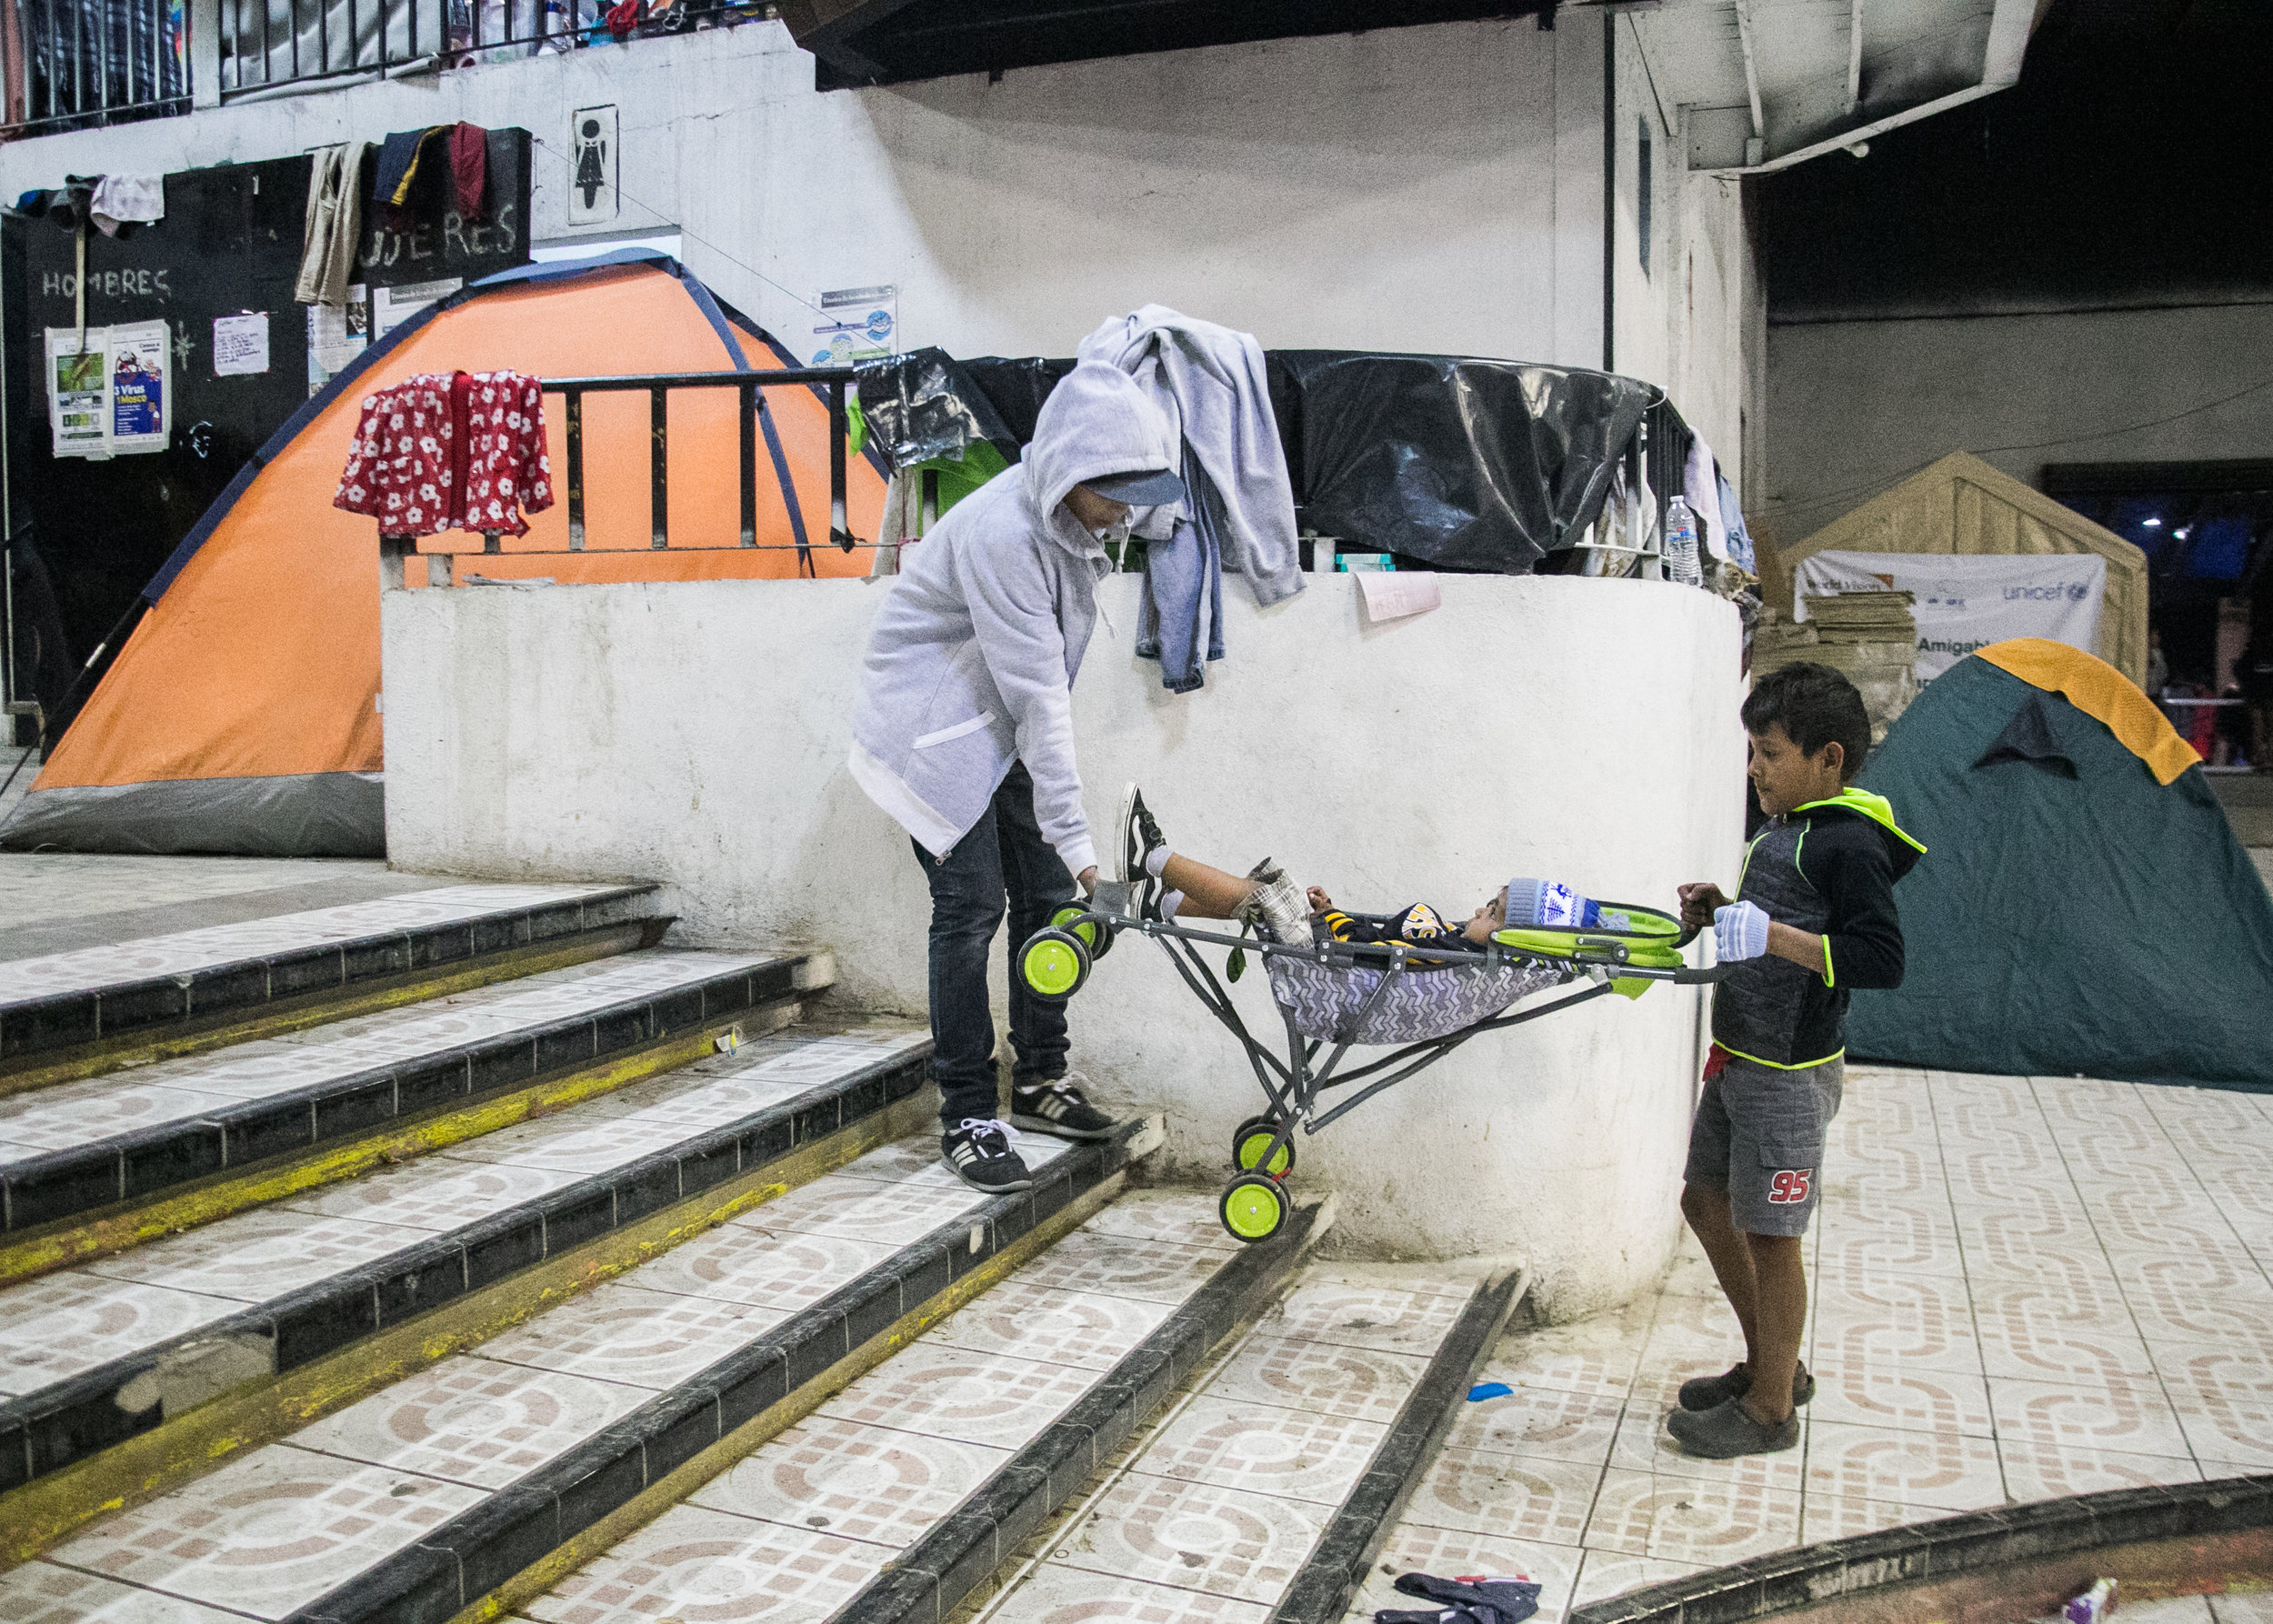 Two young boys lift their sibling's baby stroller up a set of stairs in the Barretal refugee camp. The camp is not handicapped accessible. Renovations were not possible due to the last-second nature of the migrant caravan relocation. Over 3,000 refugees were moved to other facilities after the main camp at a Tijuana baseball field was flooded out in late November.